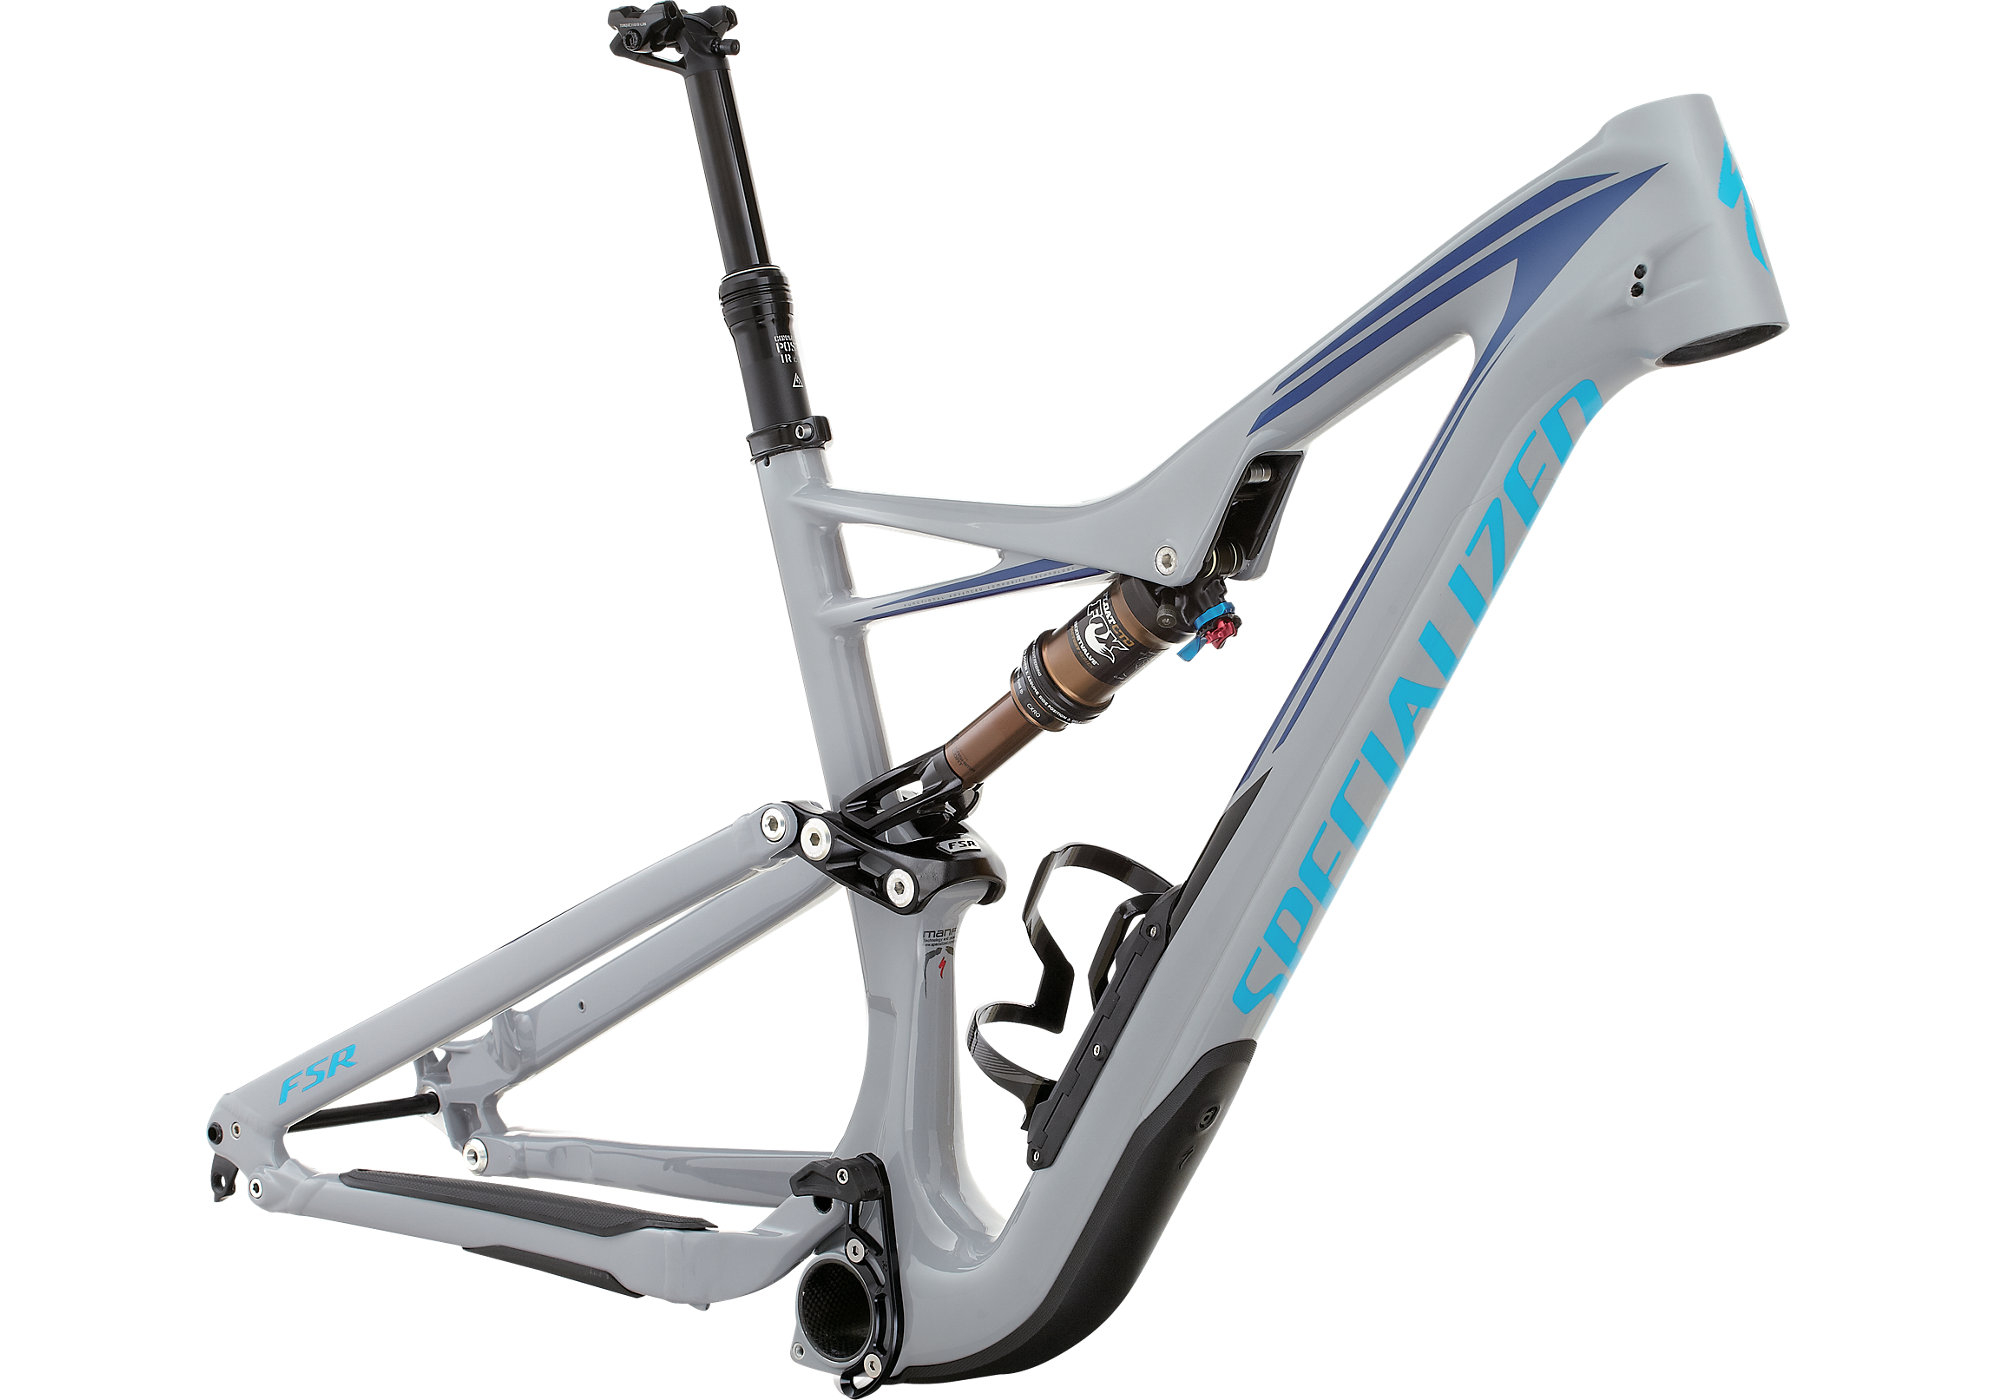 2016 Specialized STUMPJUMPER FSR CARBON 650B FRAME - Specialized ...